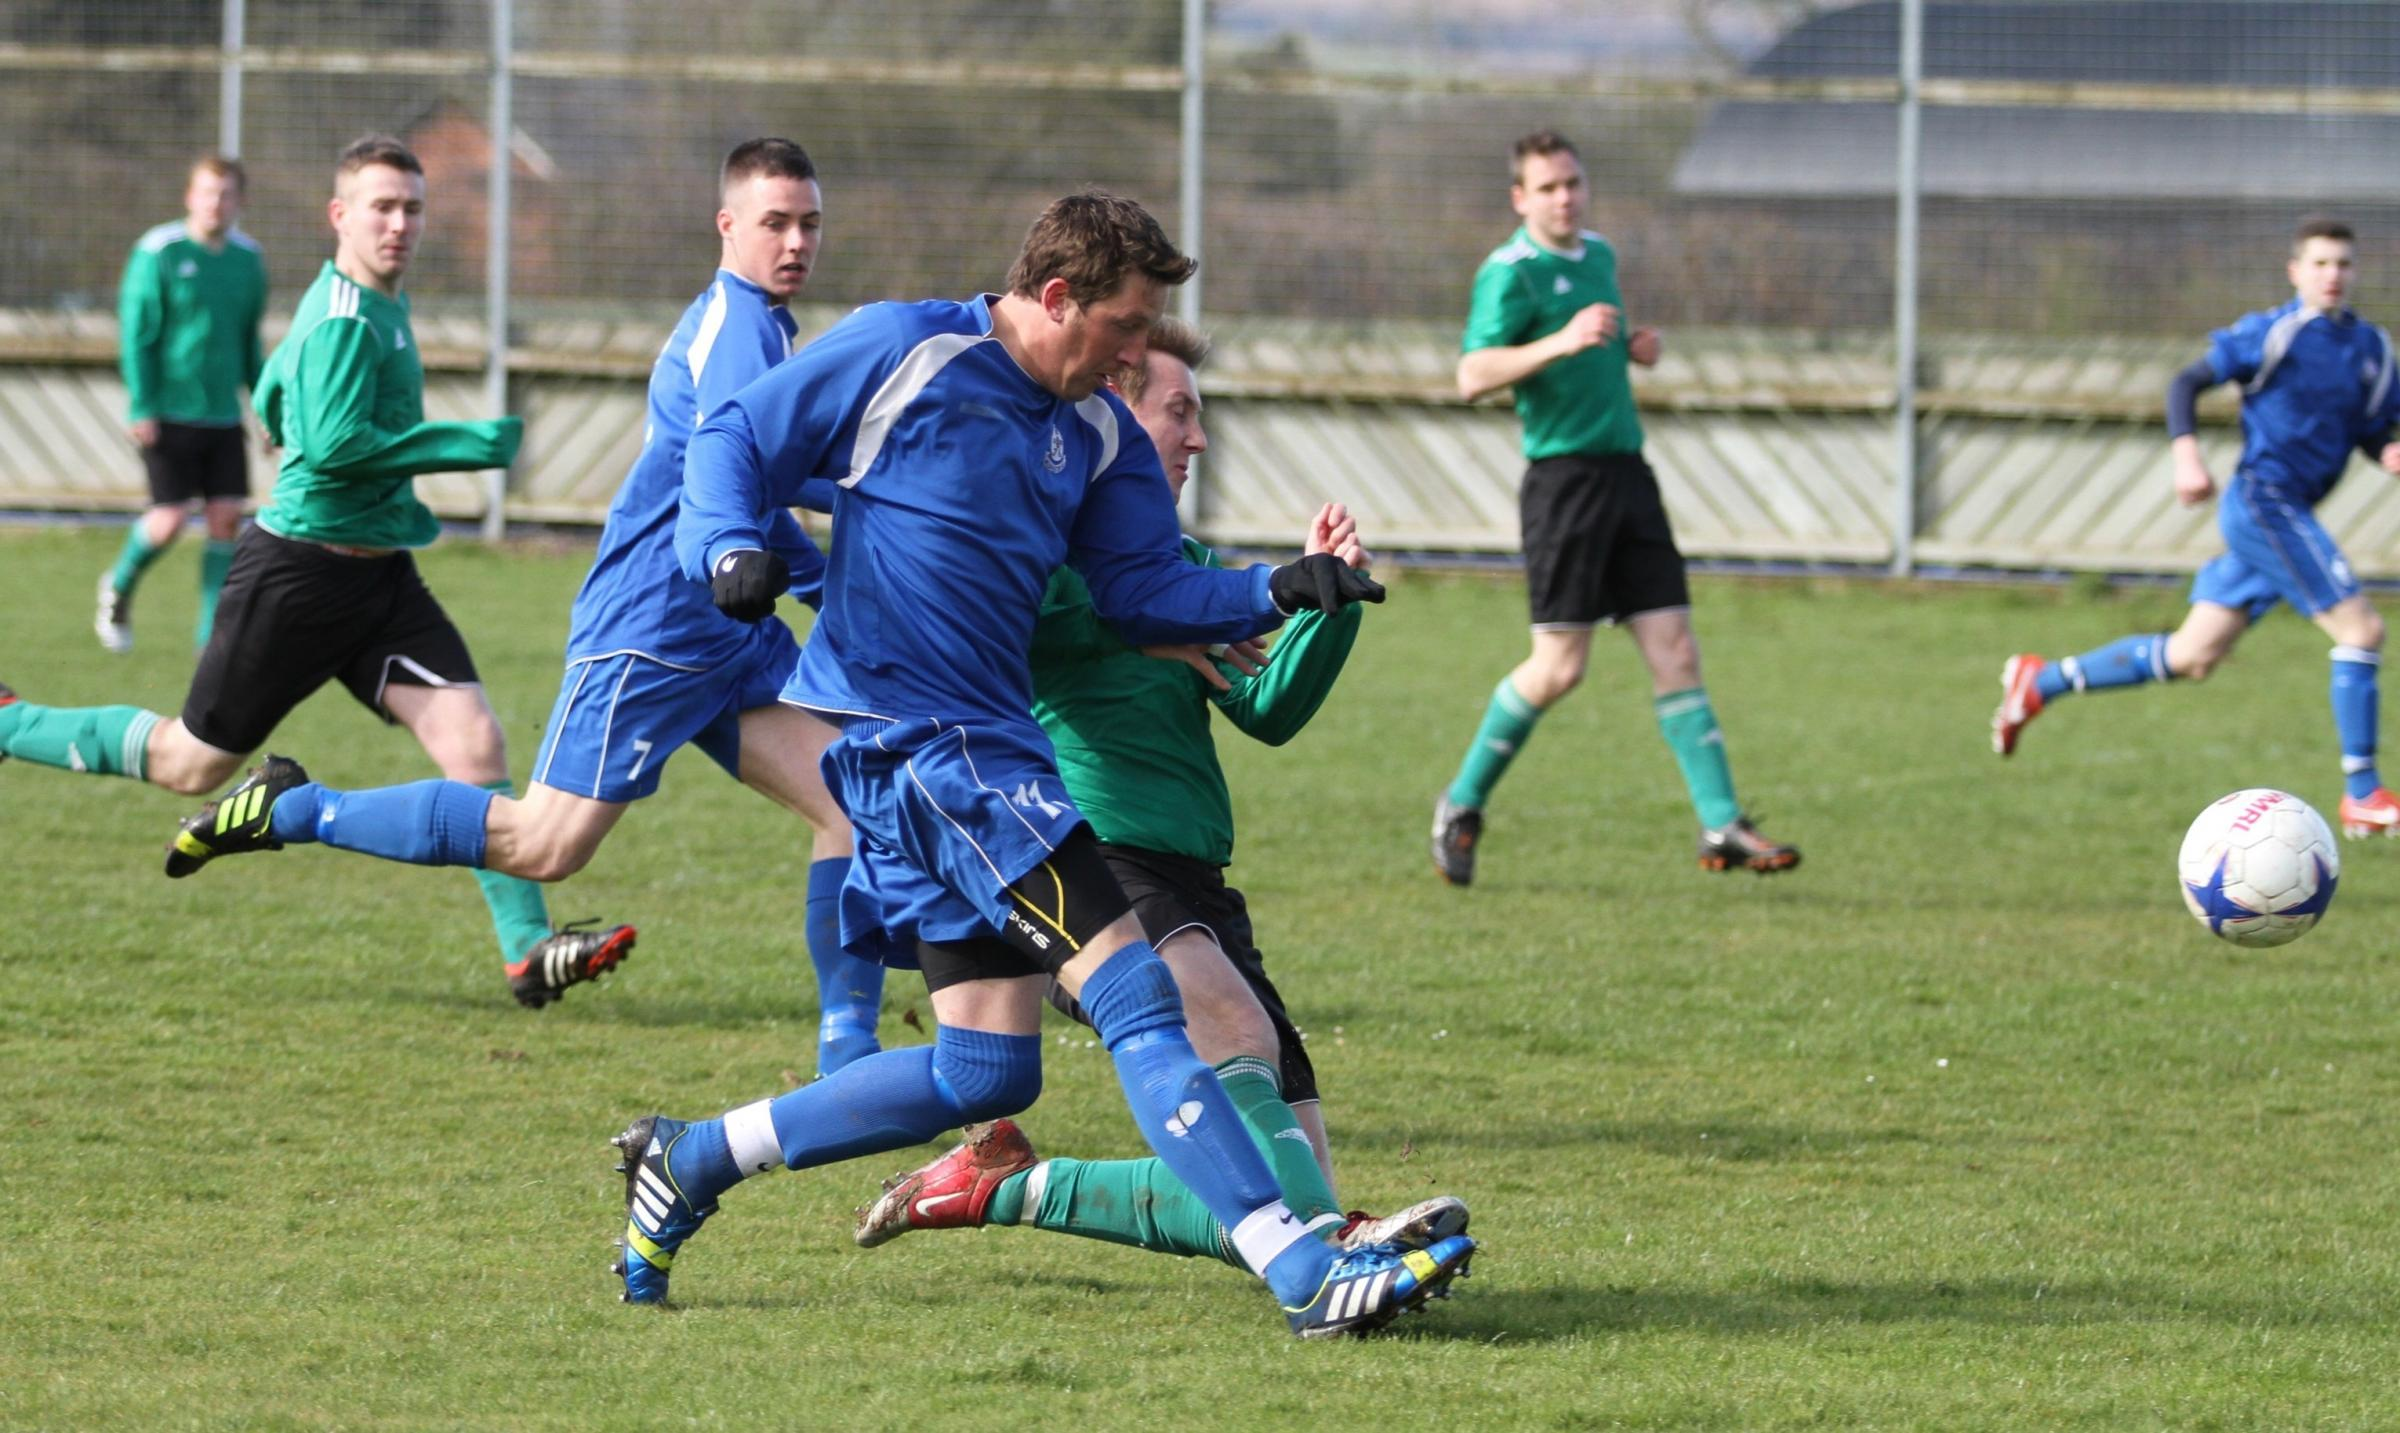 Woofferton's seven-goal hero Danny Gower powers past an Orleton Colts Reserves' player. Photograph by Keith Gluyas.